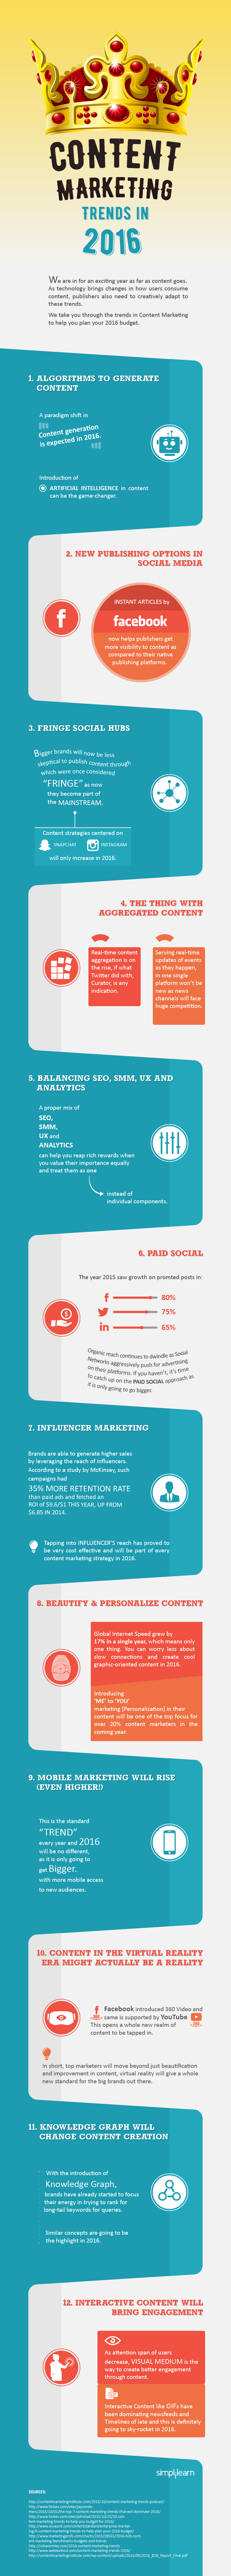 12 Content Marketing Trends to Watch in 2016 - #infographic